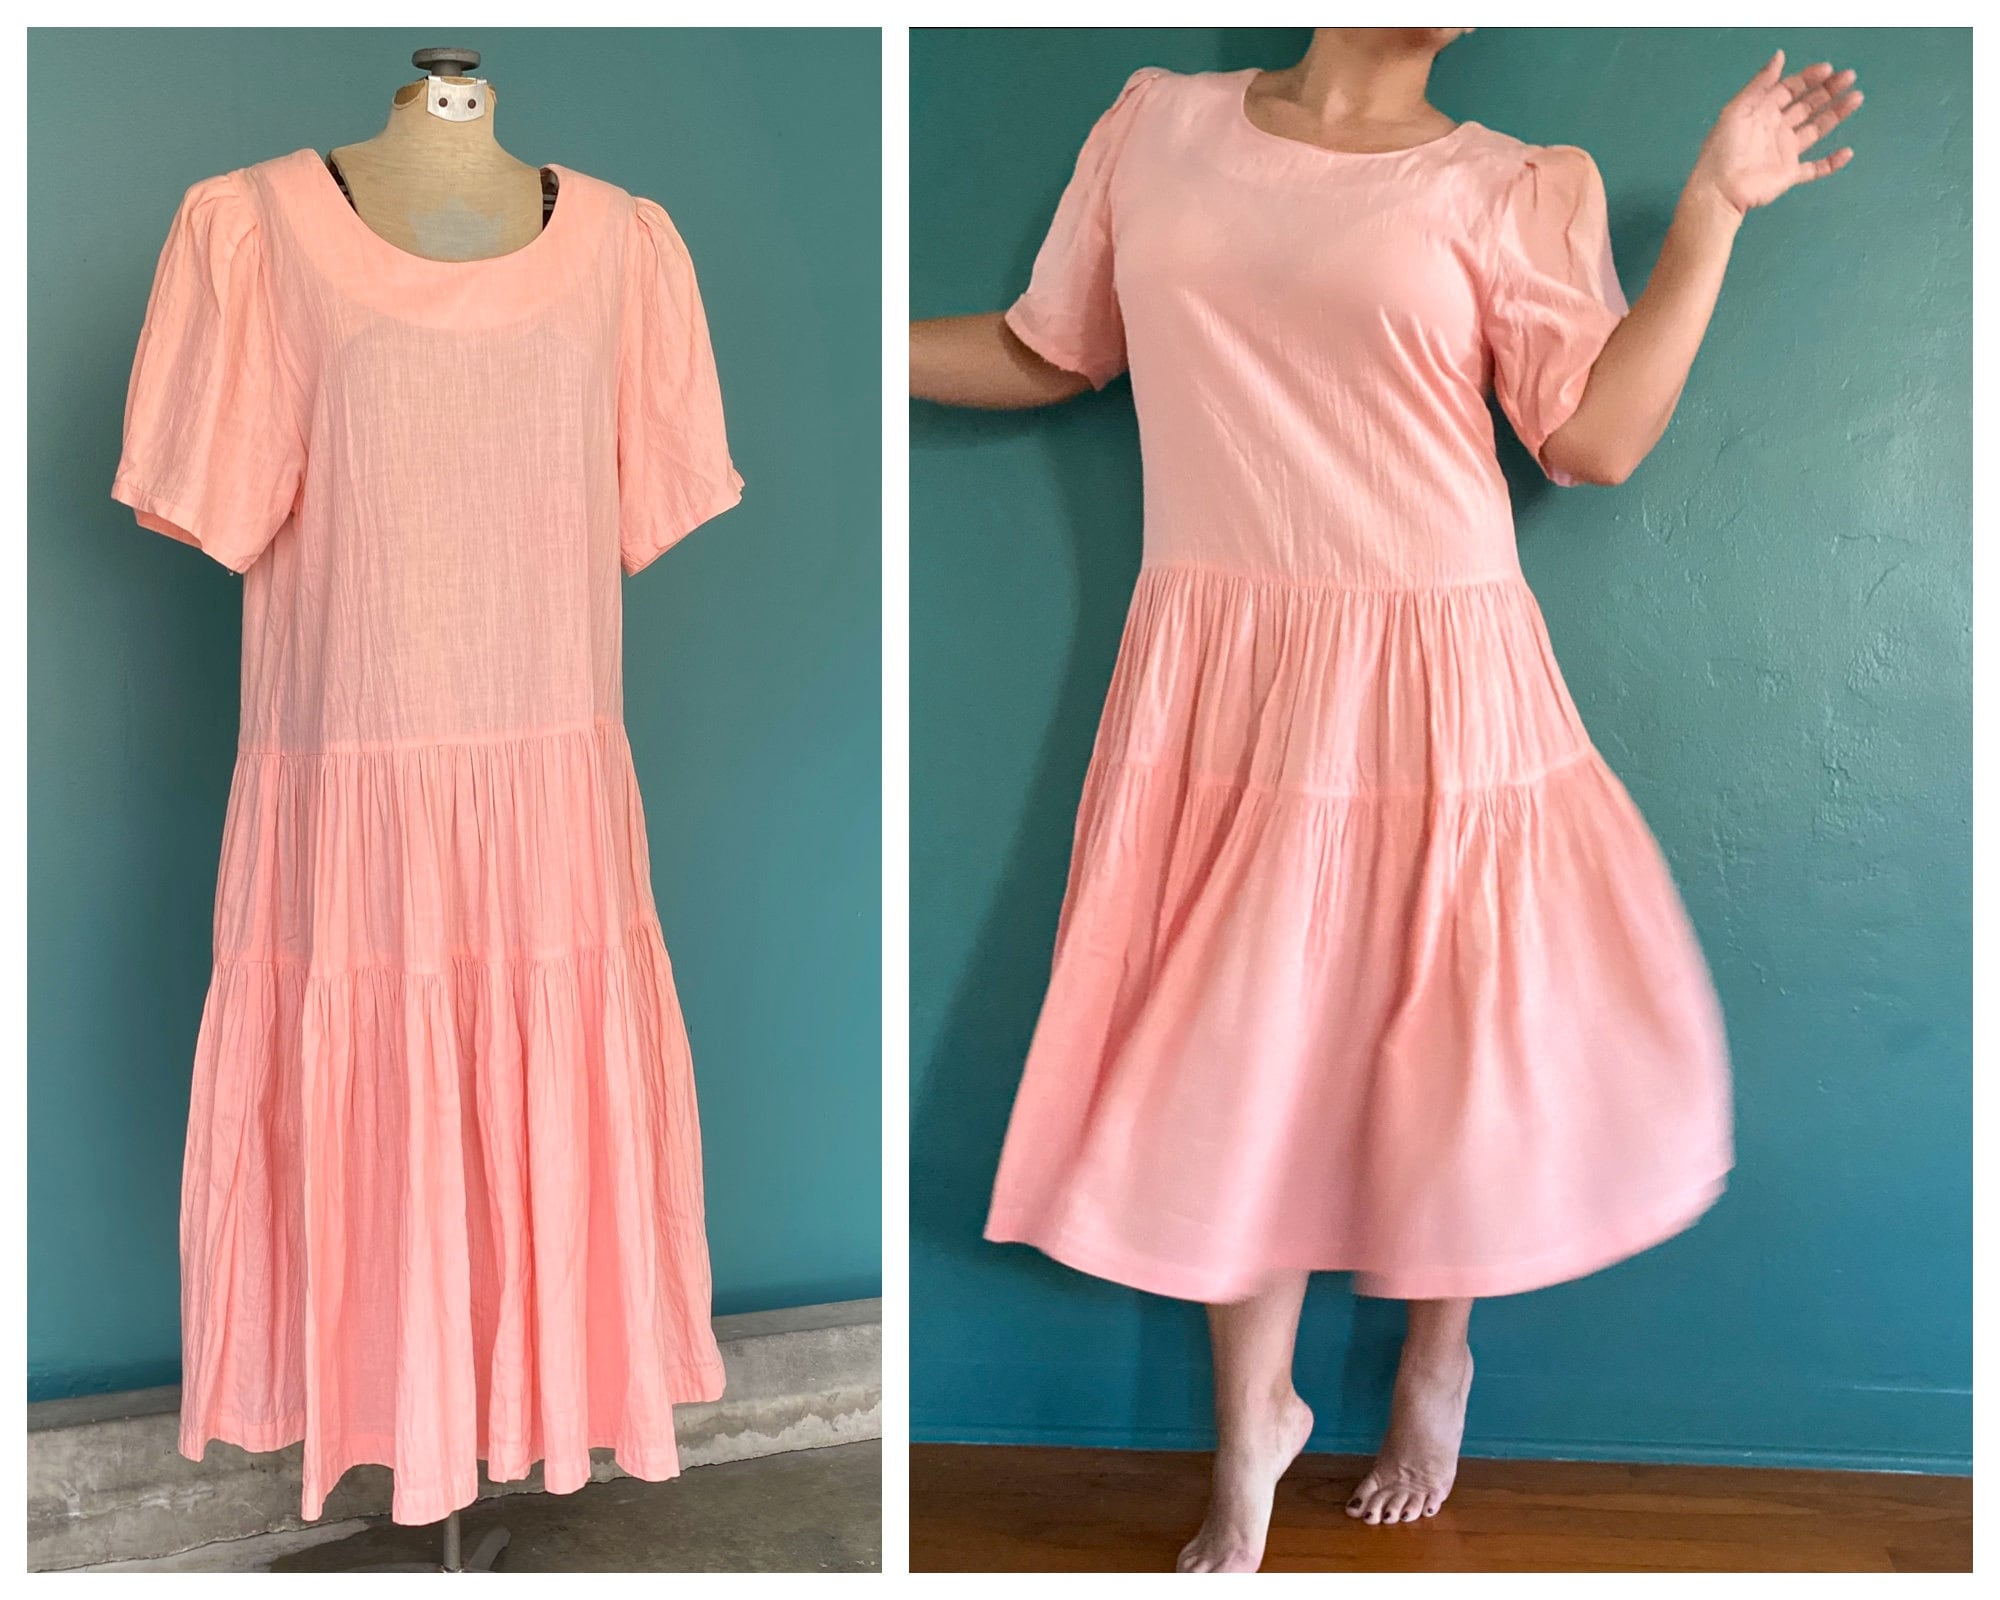 80s Dresses | Casual to Party Dresses Maxi Peach Puff Sleeve 80S Vintage Dress Loose Summer Womens 1980S Cotton Day Dress, Taralynevansstudio $0.00 AT vintagedancer.com